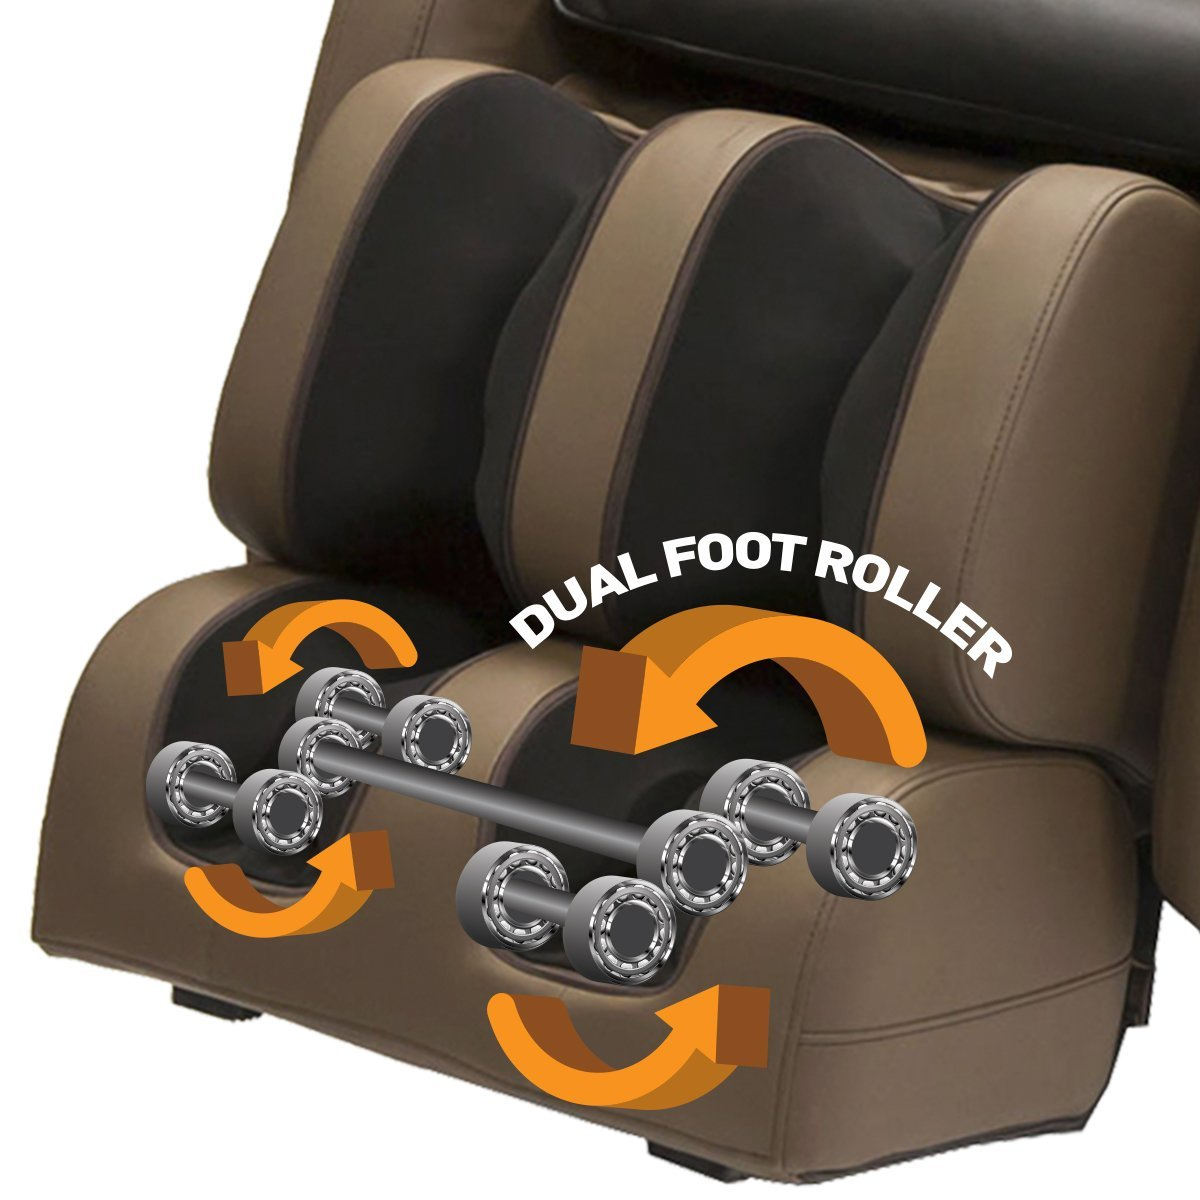 Kahuna LM6800 Dual Foot Massage Rollers - Kahuna Massage Chair Reviews